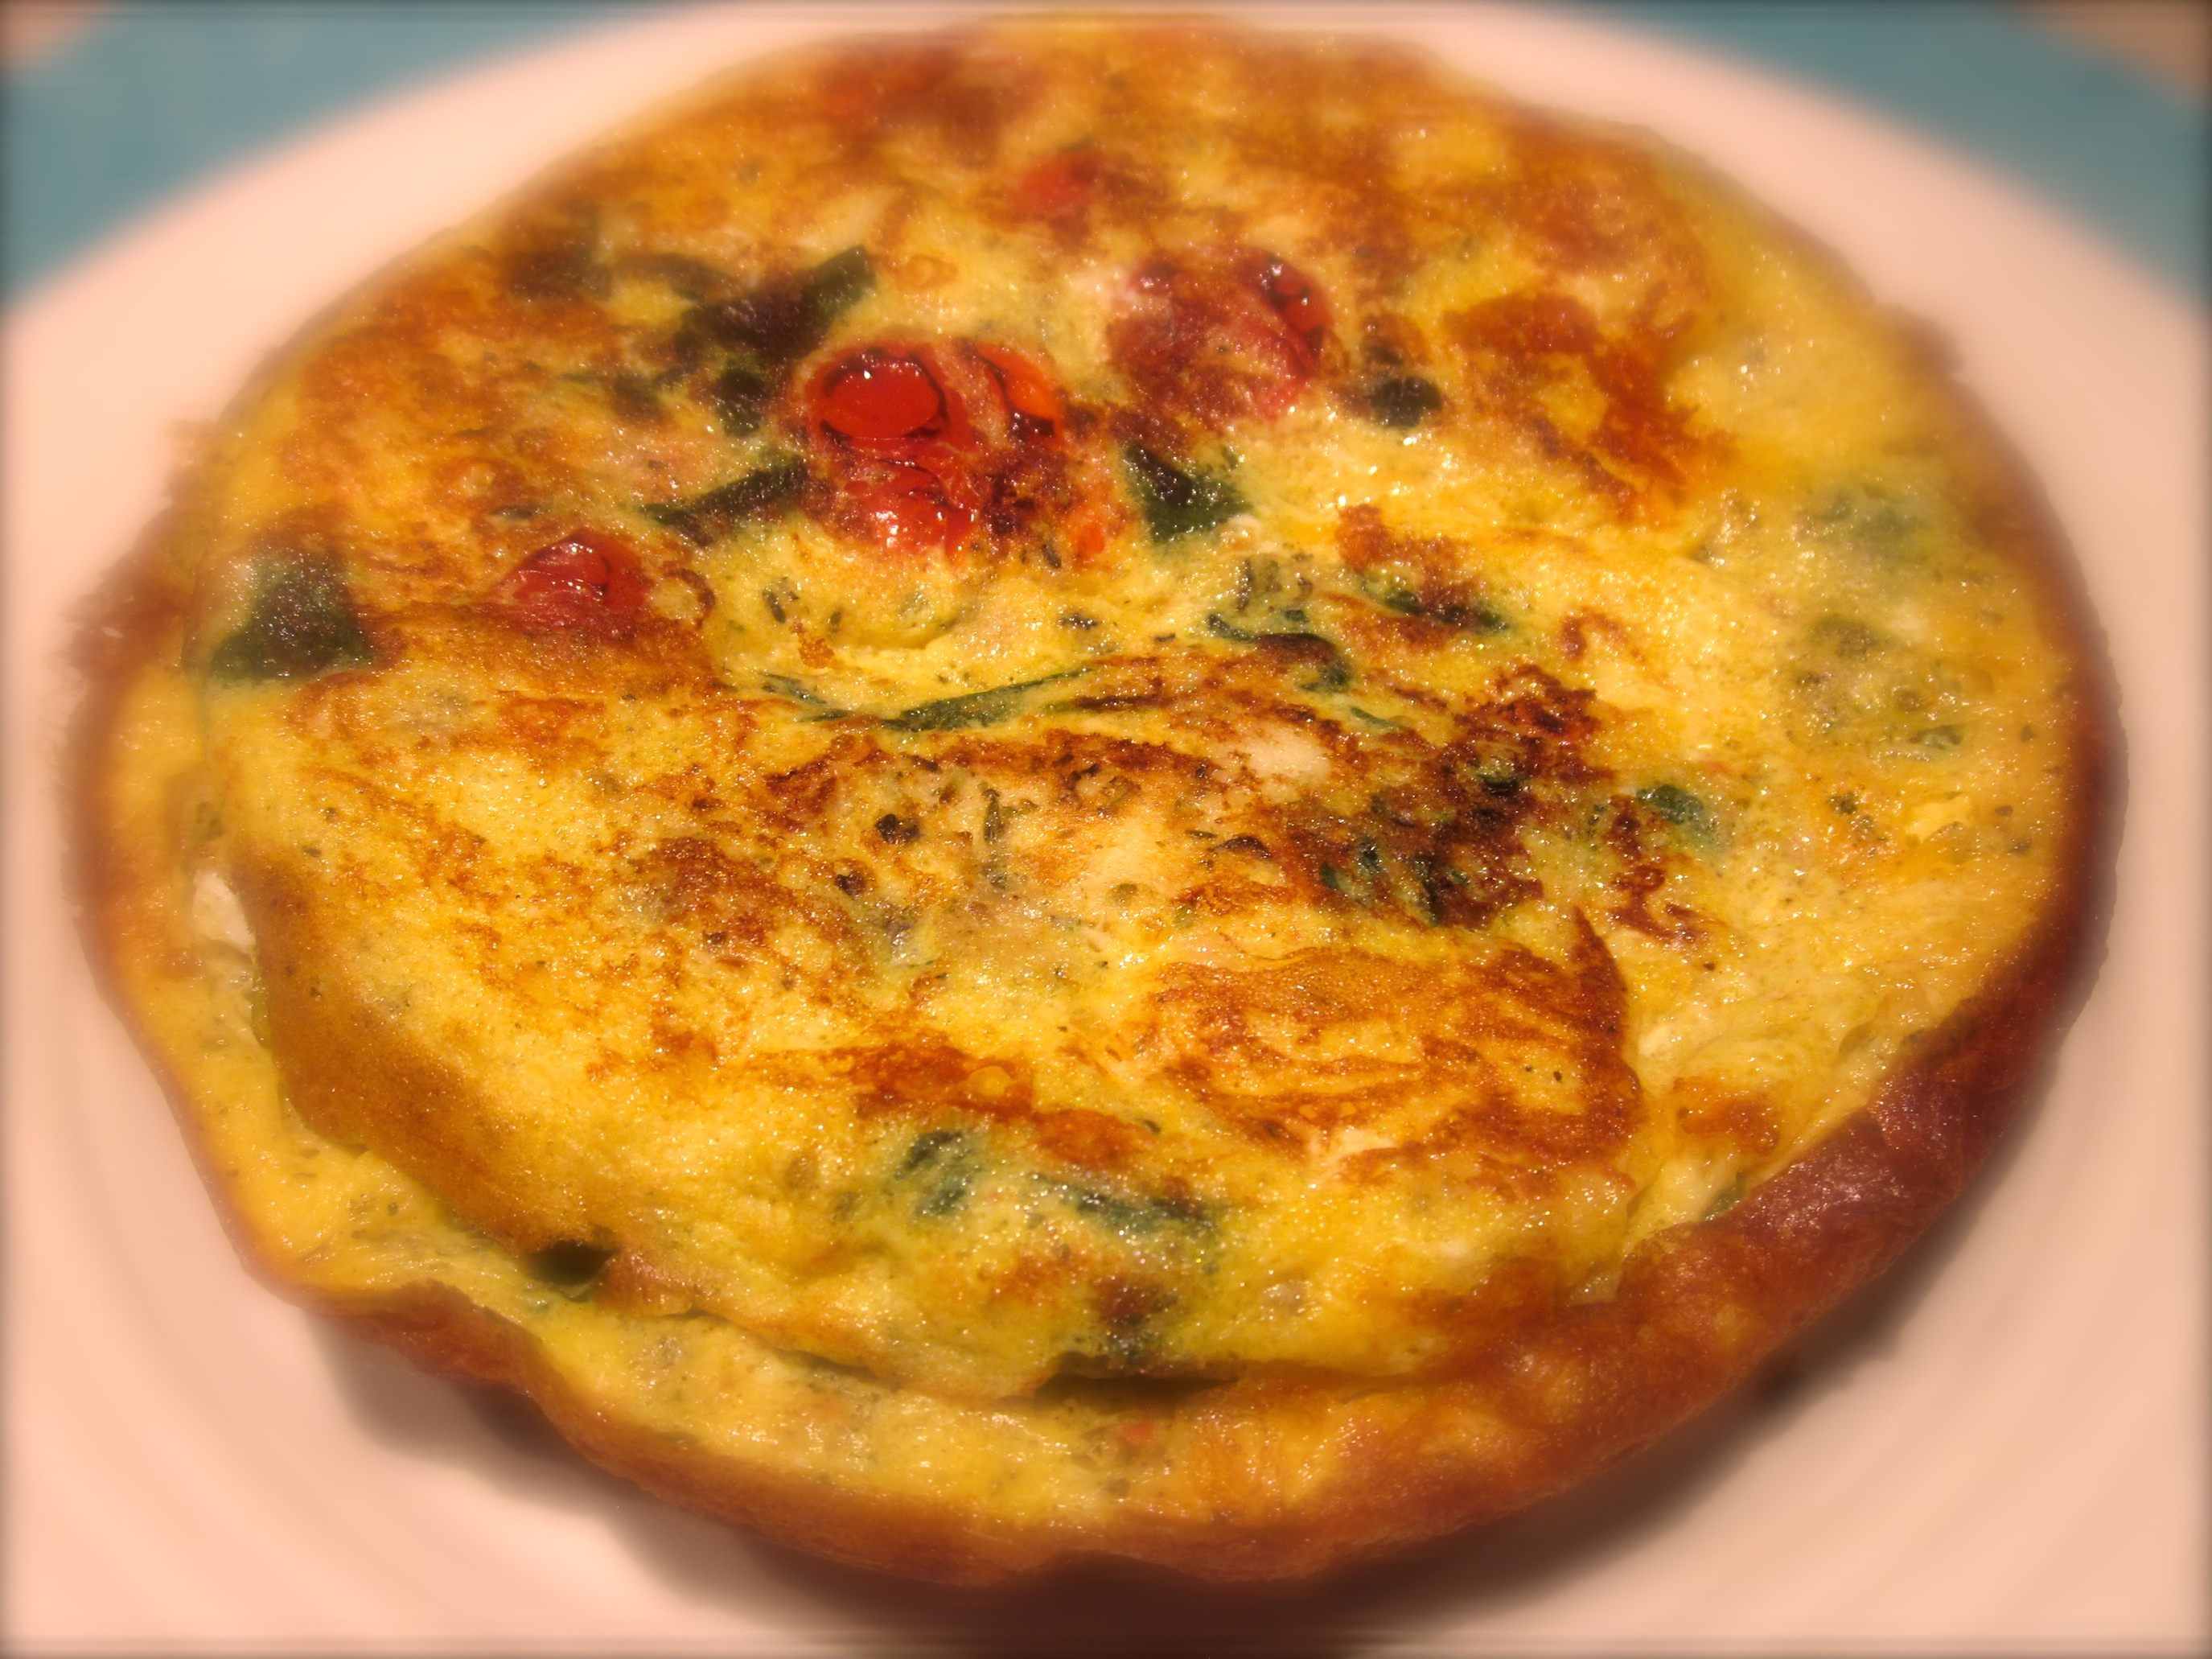 Cod, Spinach, Cheese & Tomato Frittata (a great use of leftovers)